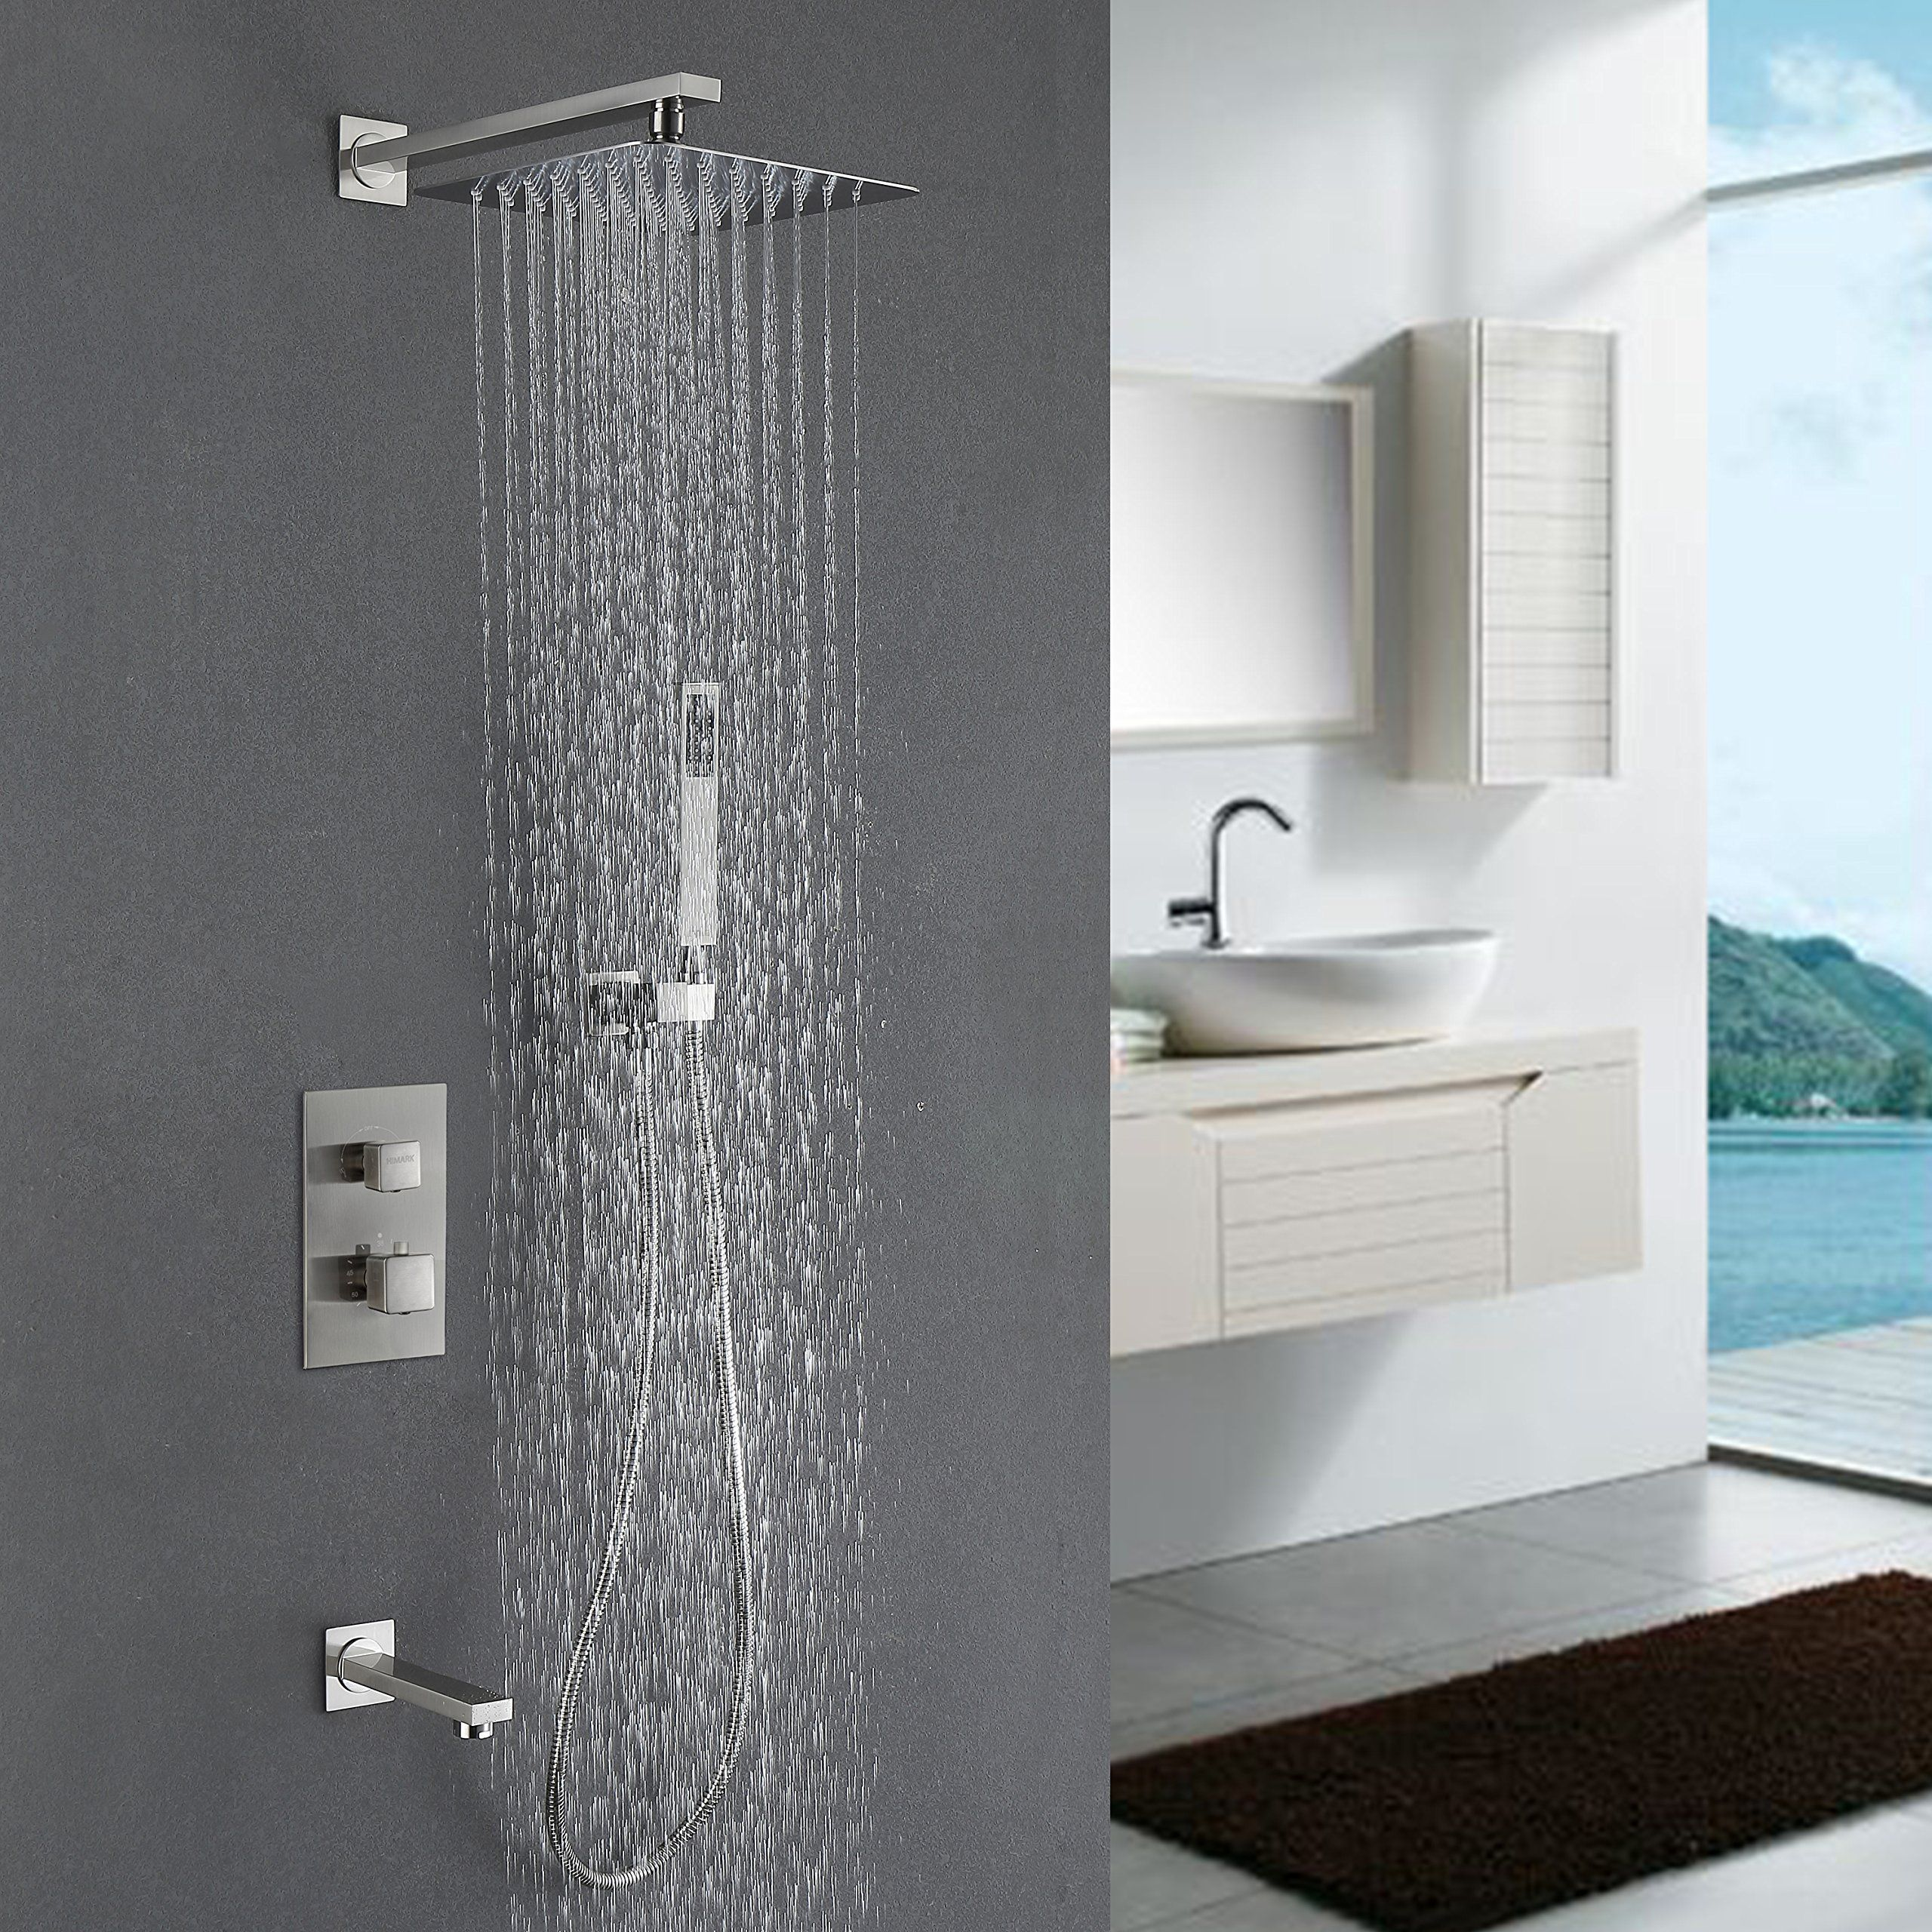 chrome ideas bathroom square styles contemporary showy system shower decorating arm ceiling marvelous room types with fantastic rain decorations for showers modern and assorted inspiring well designs heads as